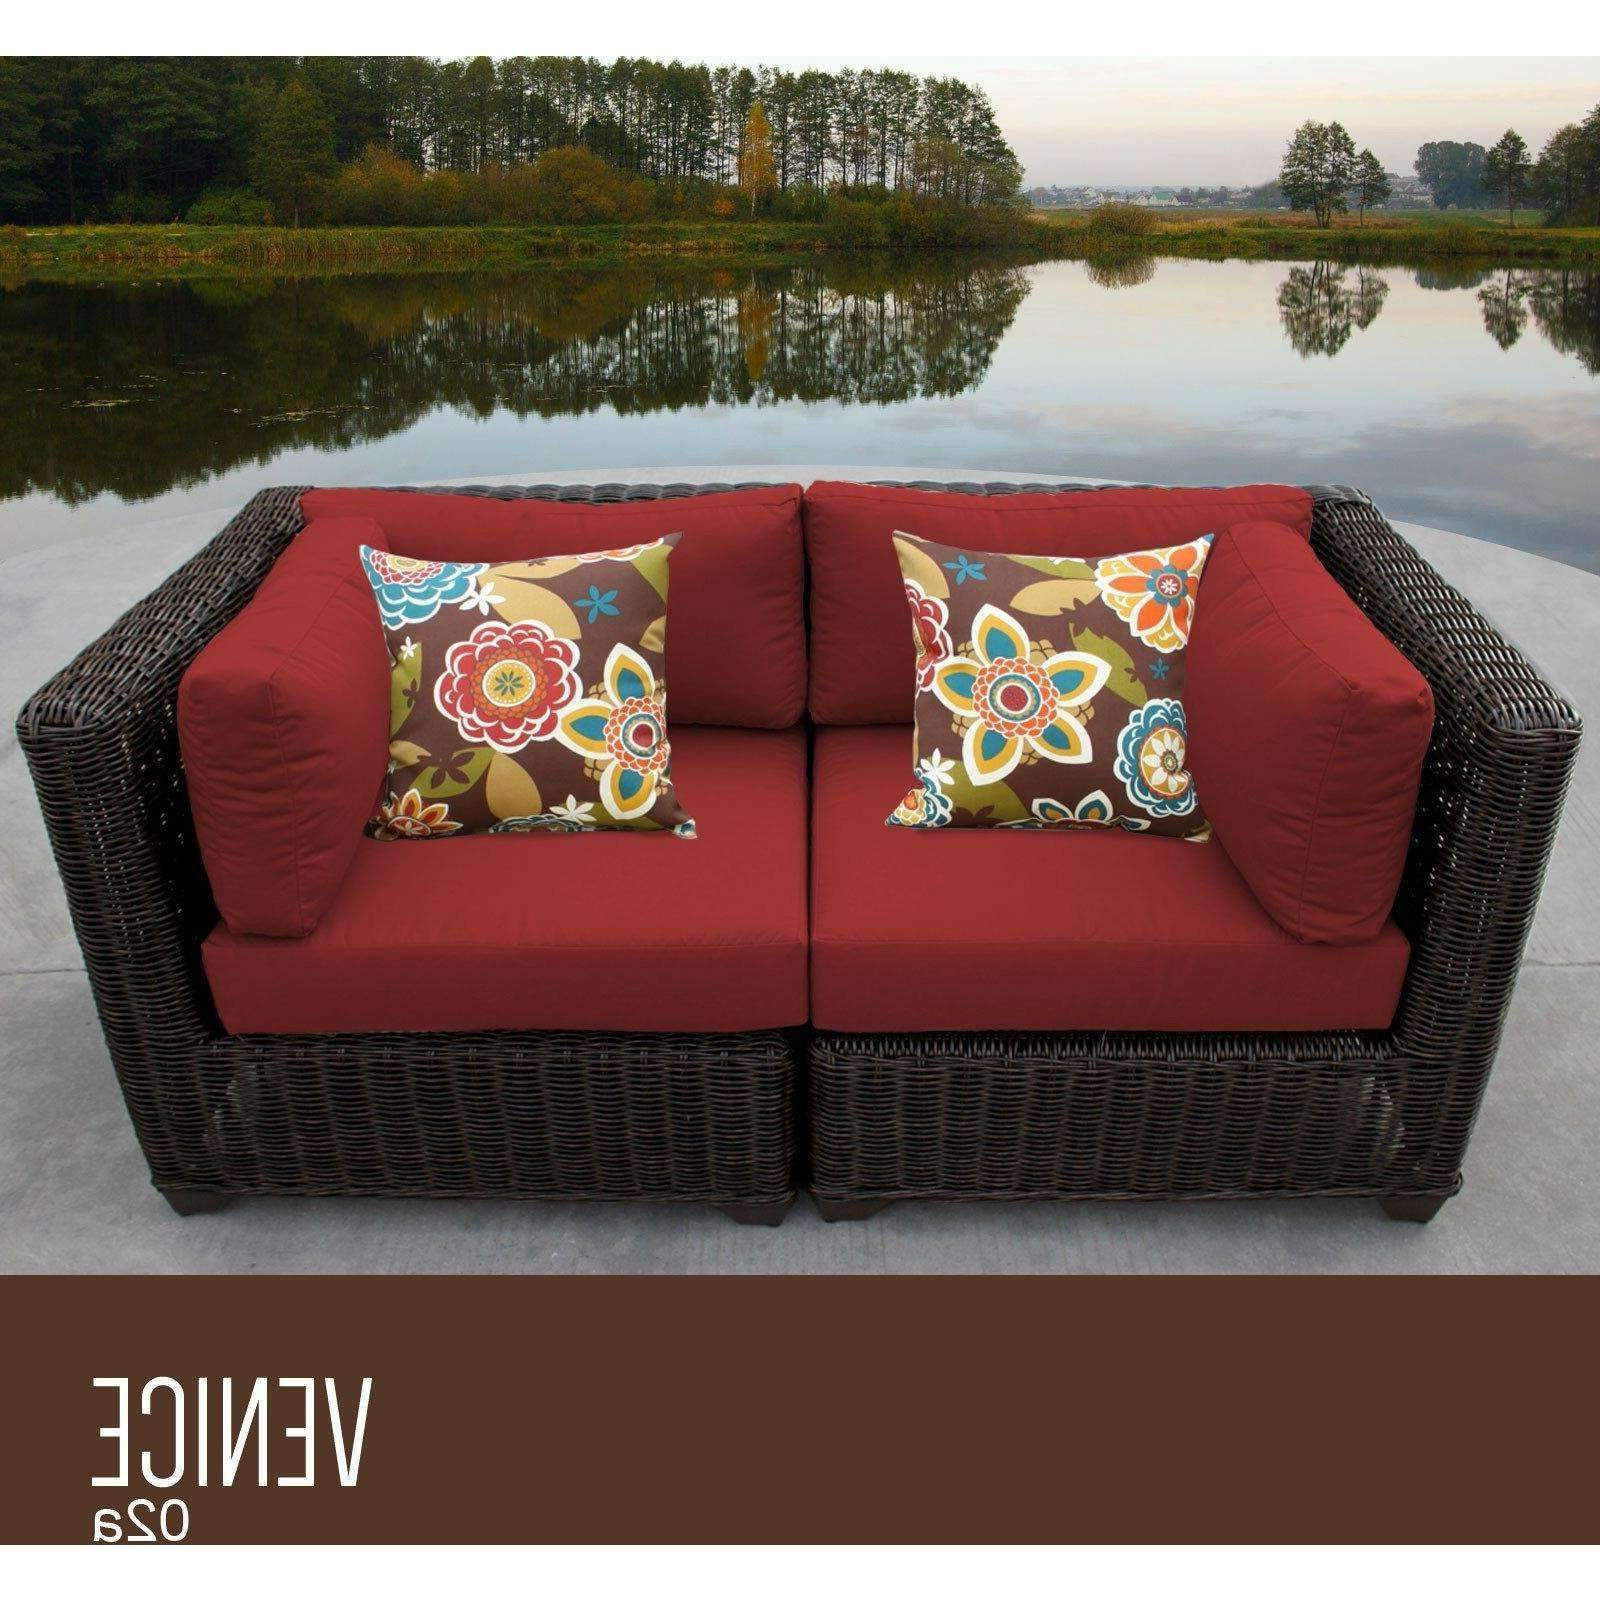 Preferred Venice 2 Piece Outdoor Wicker Patio Furniture Set 02a Inside Oceanside Outdoor Wicker Loveseats With Cushions (View 9 of 25)